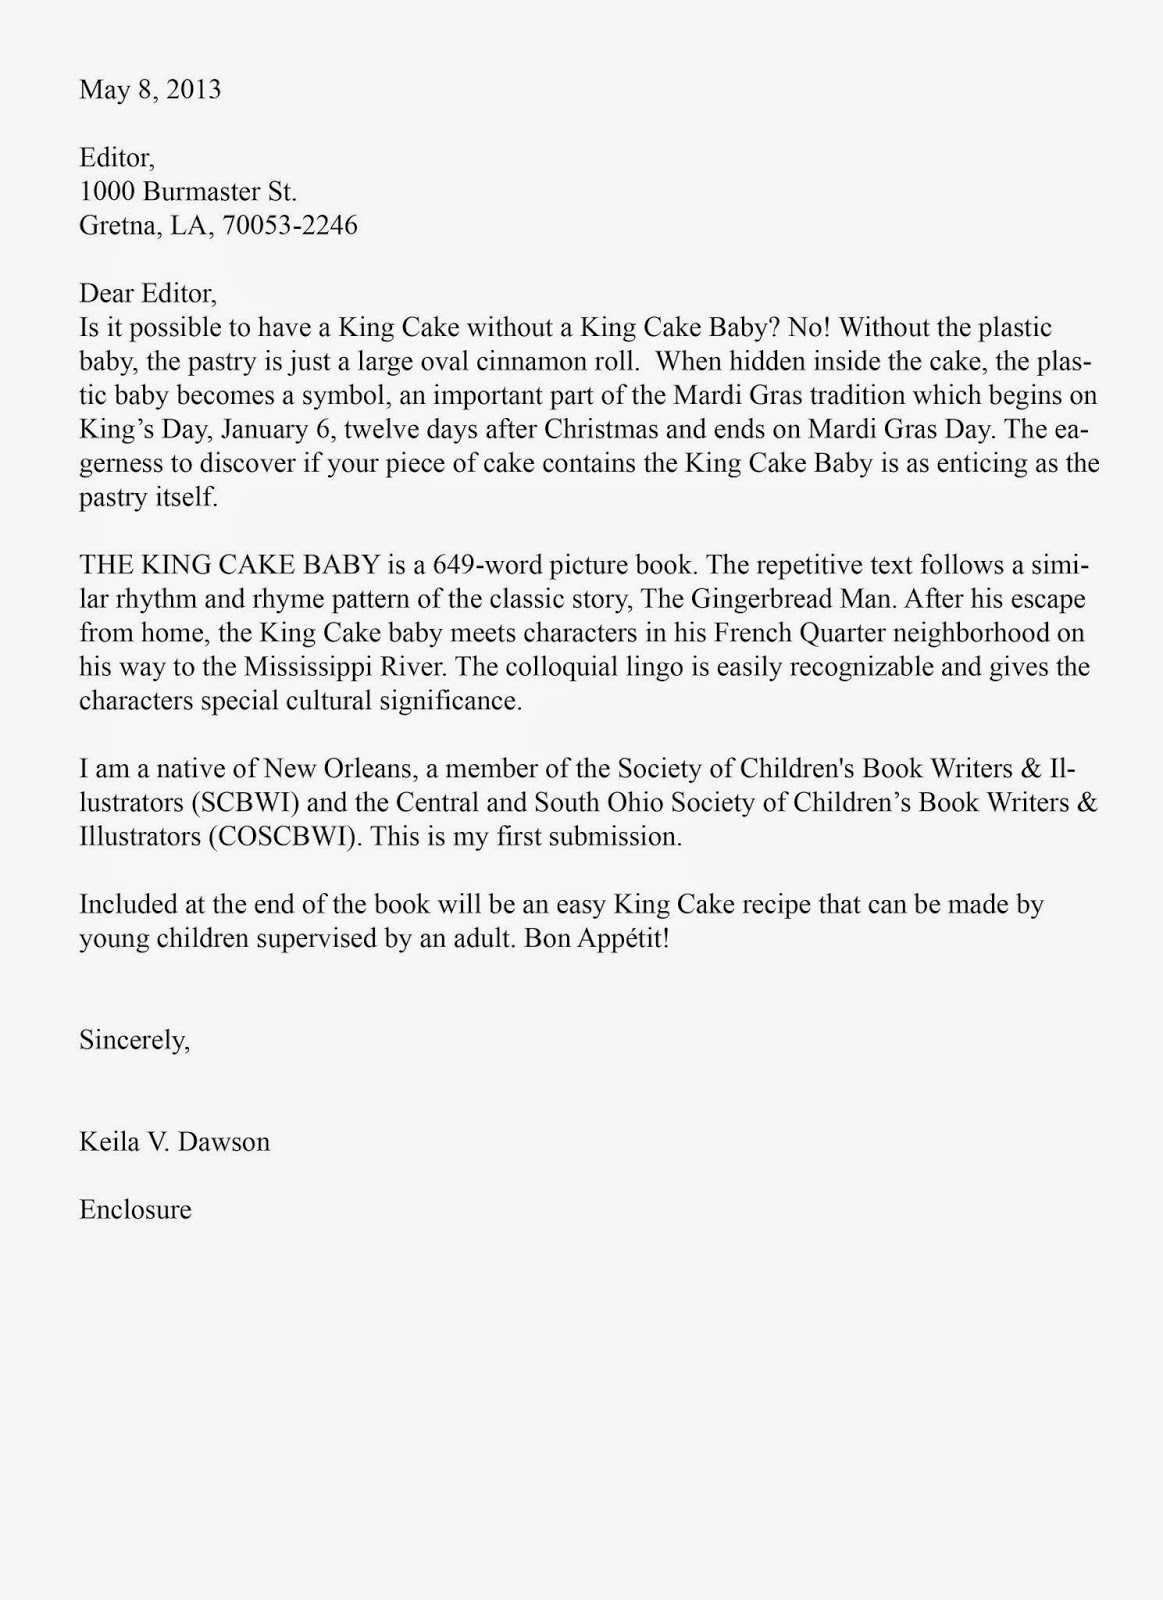 First time picture book author cover letters exposed keila dawson this cover letter does a great job in letting the editor know right away that keila knows what she is talking about it is short professional madrichimfo Images